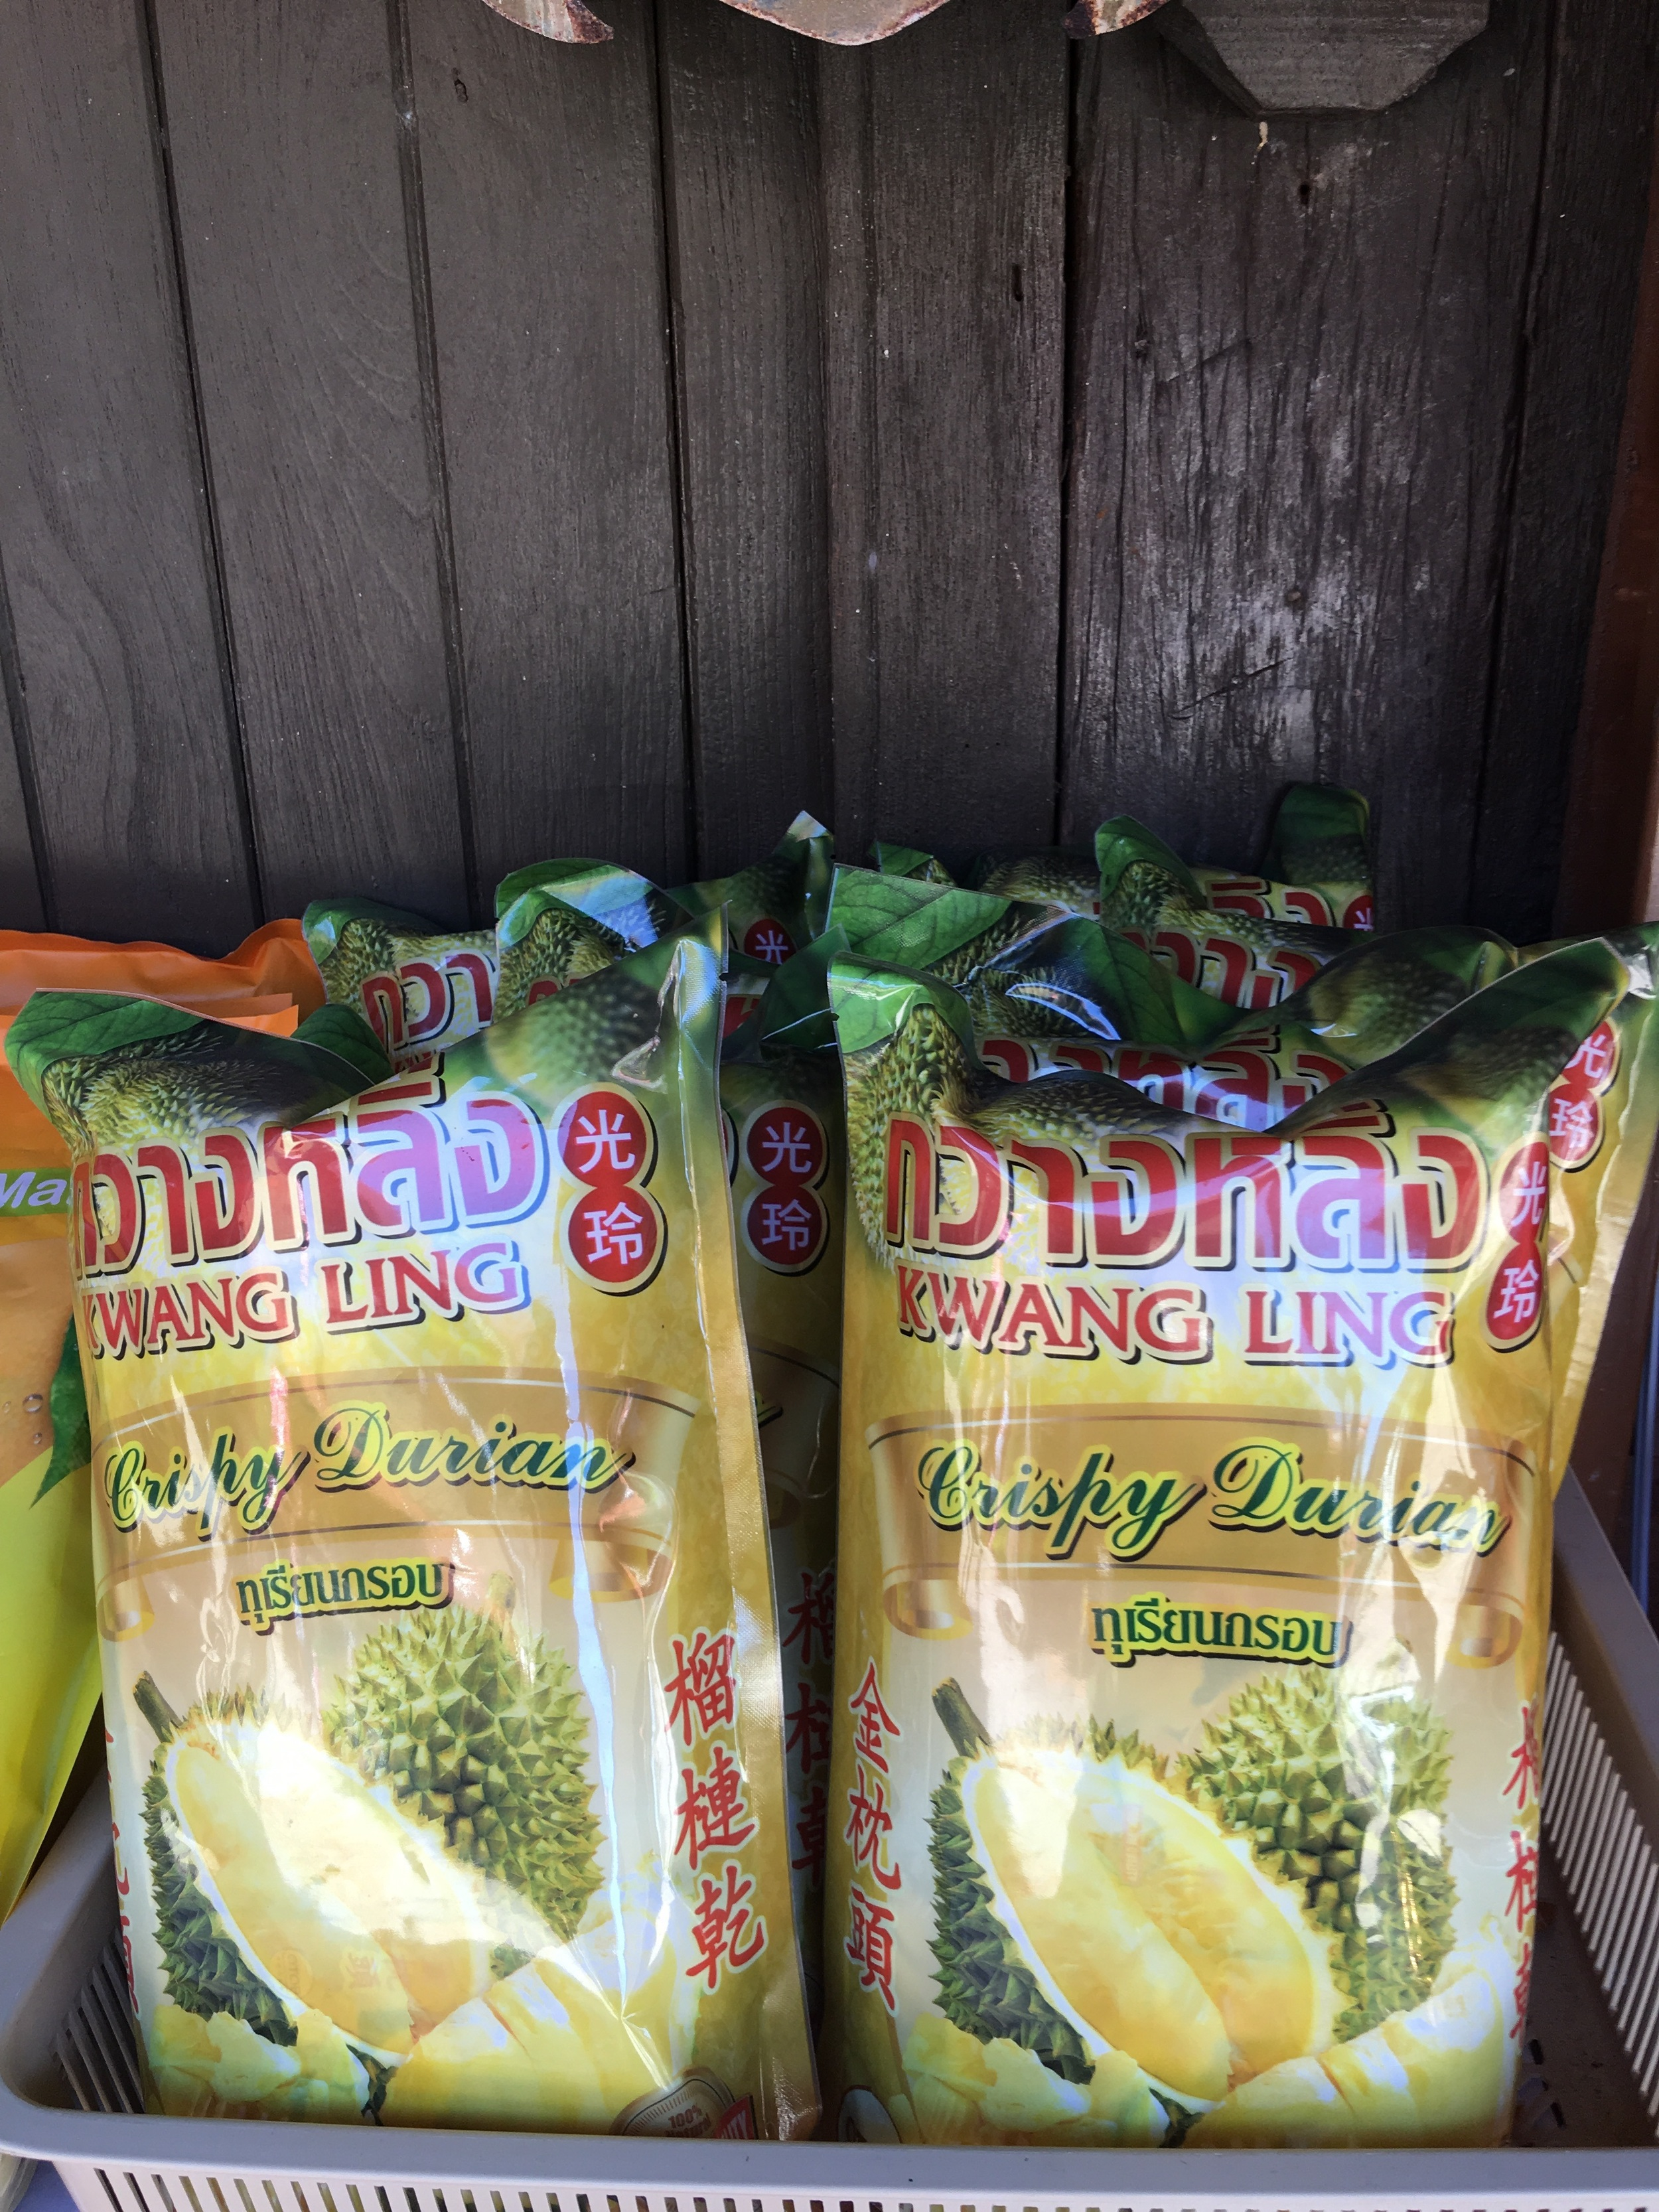 Crispy Durian Chips who who have known